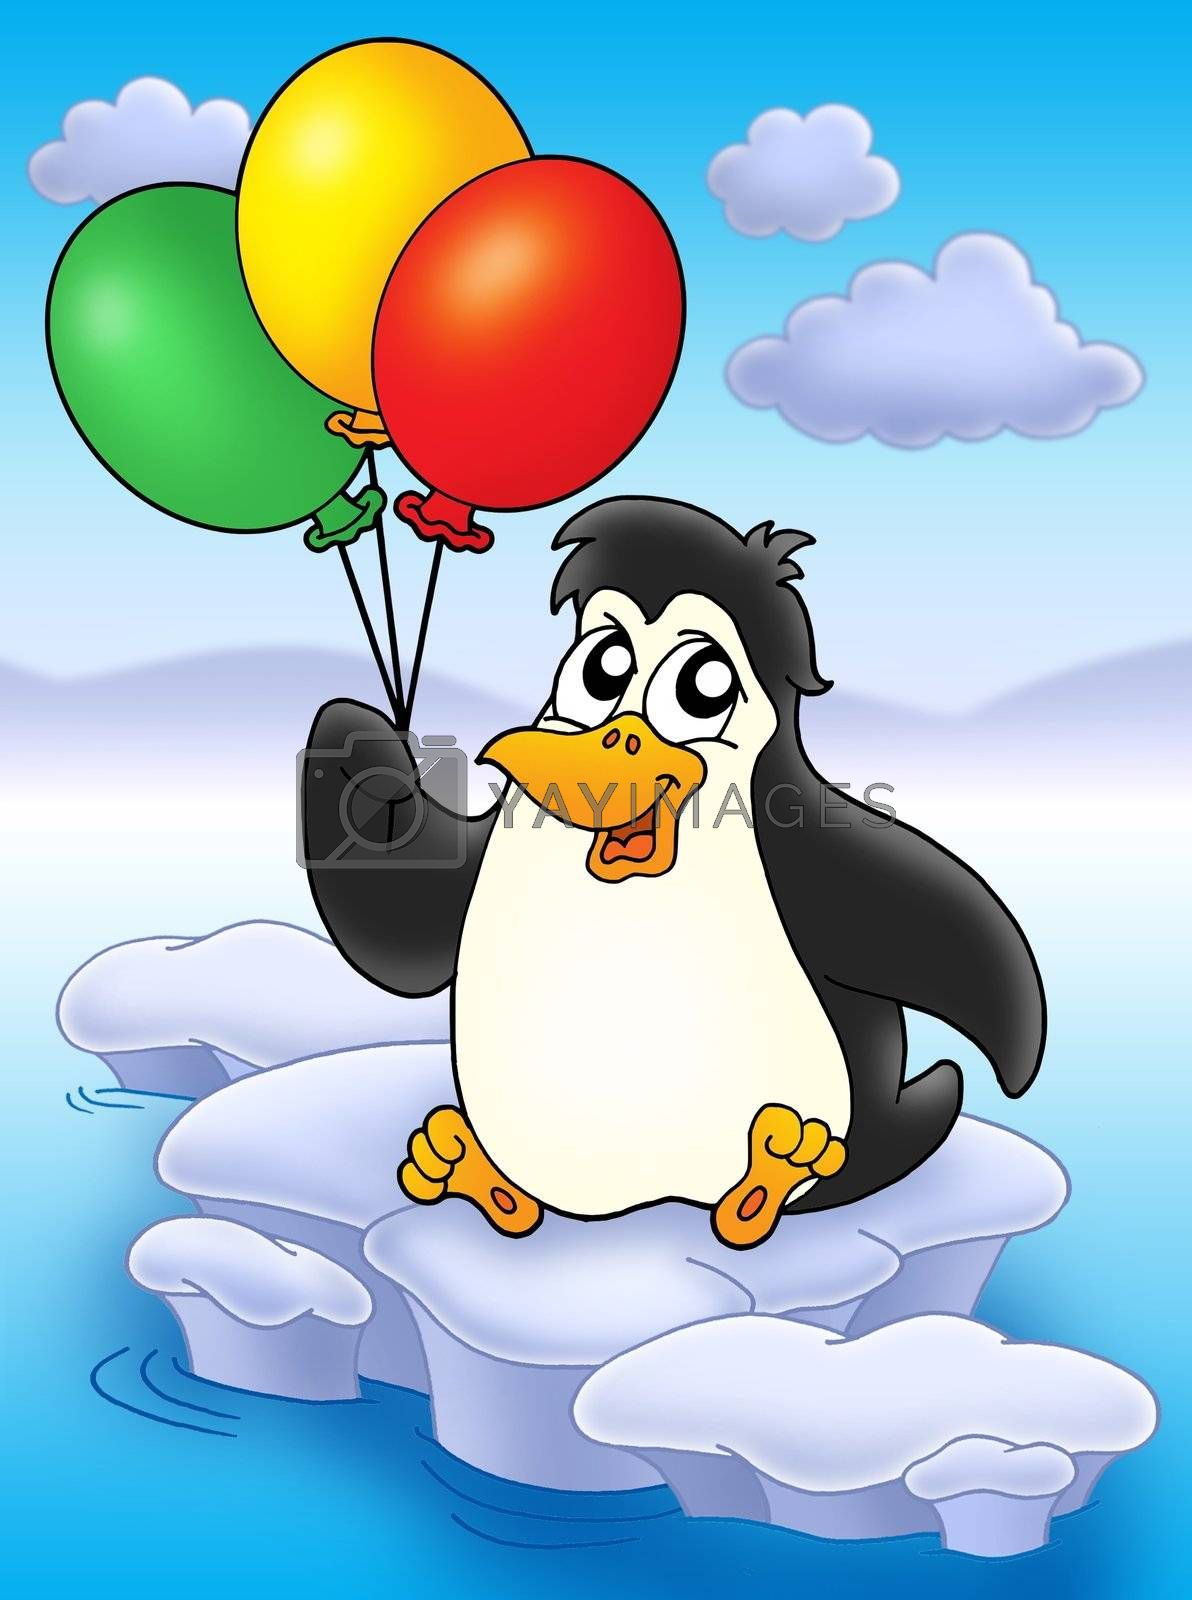 Penguin with balloons on iceberg - color illustration.